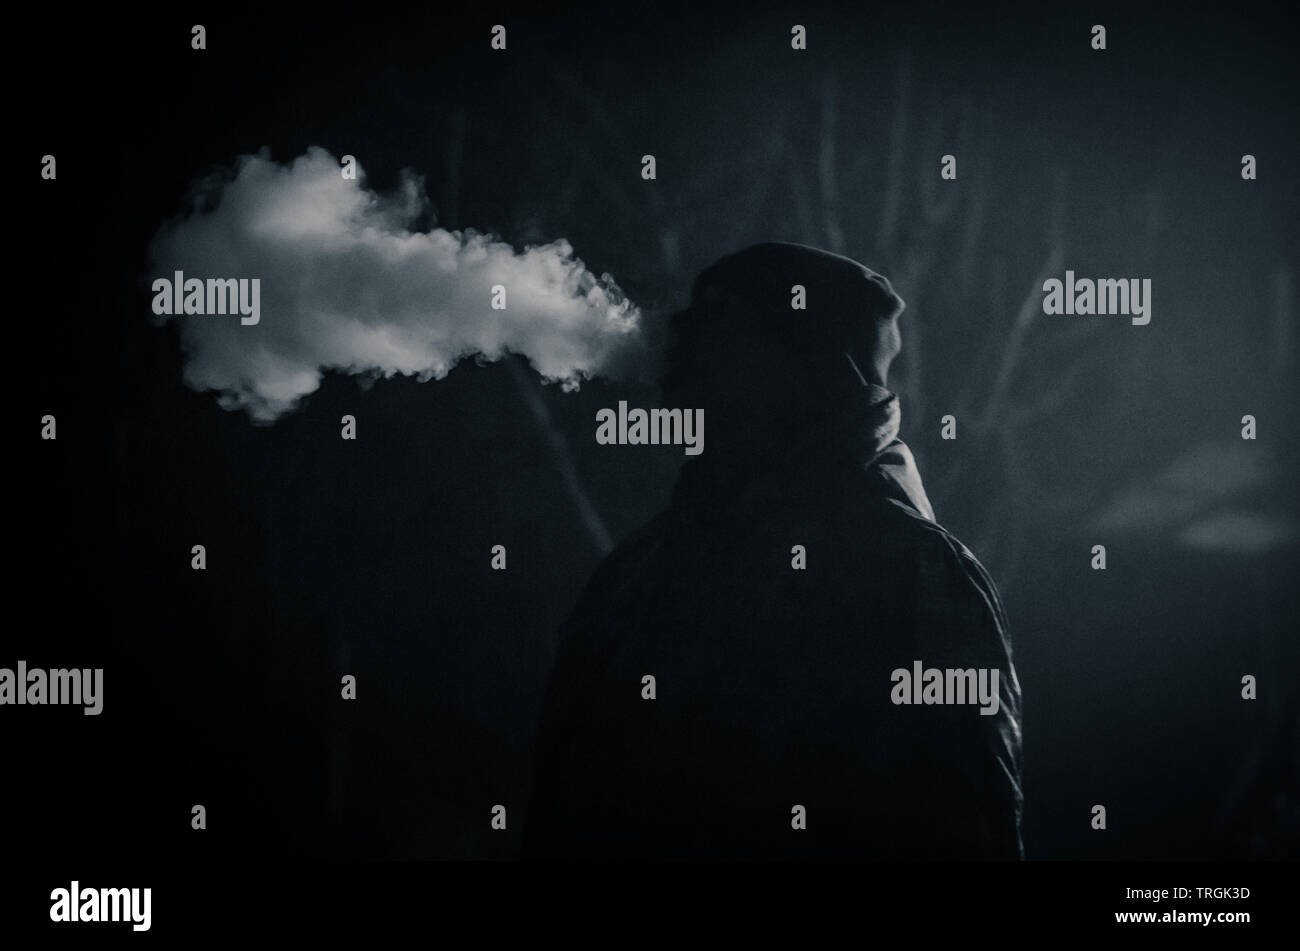 strange man smoking at night with big steam effect from the cigarette - Stock Image